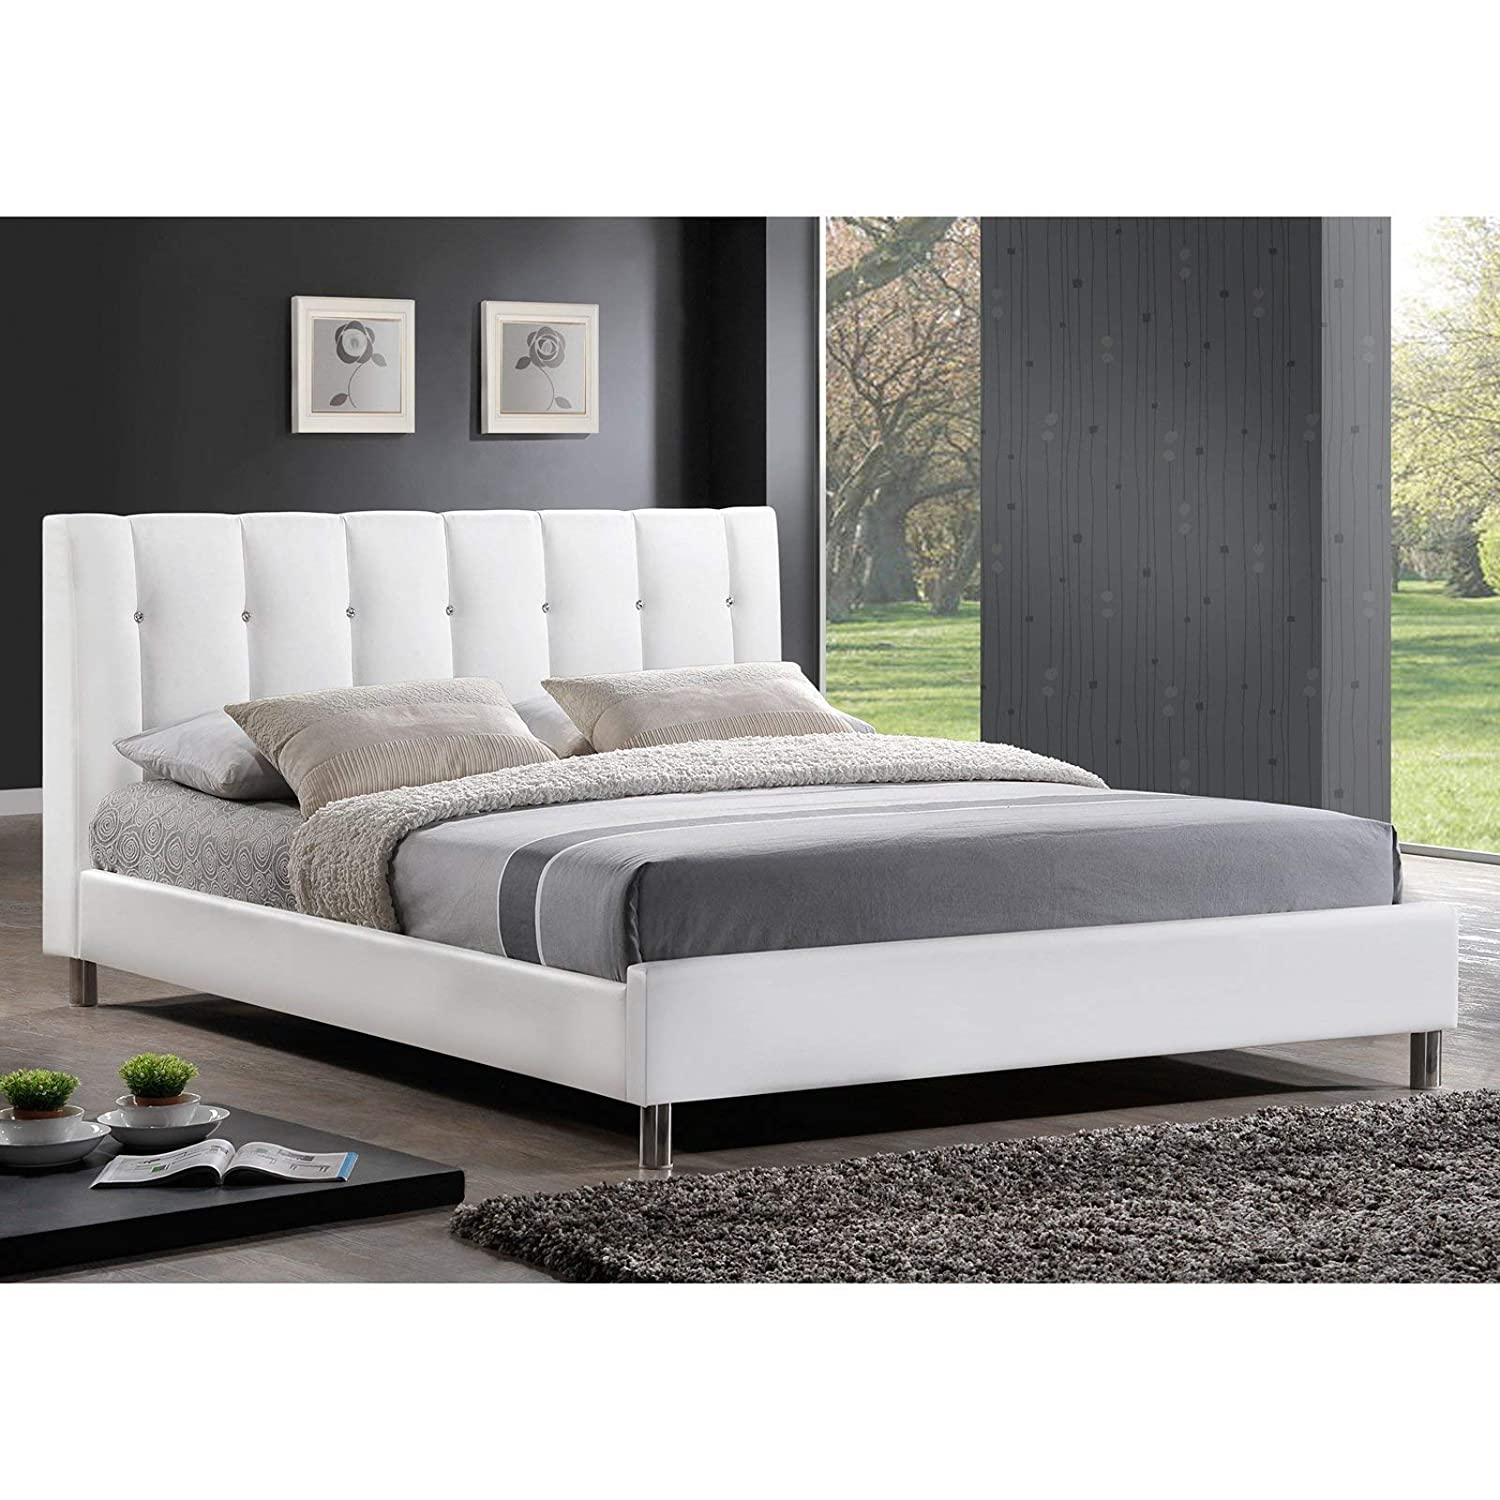 Merveilleux Amazon.com   Baxton Studio Vino Modern Bed With Upholstered Headboard,  Queen, White   Platform Beds